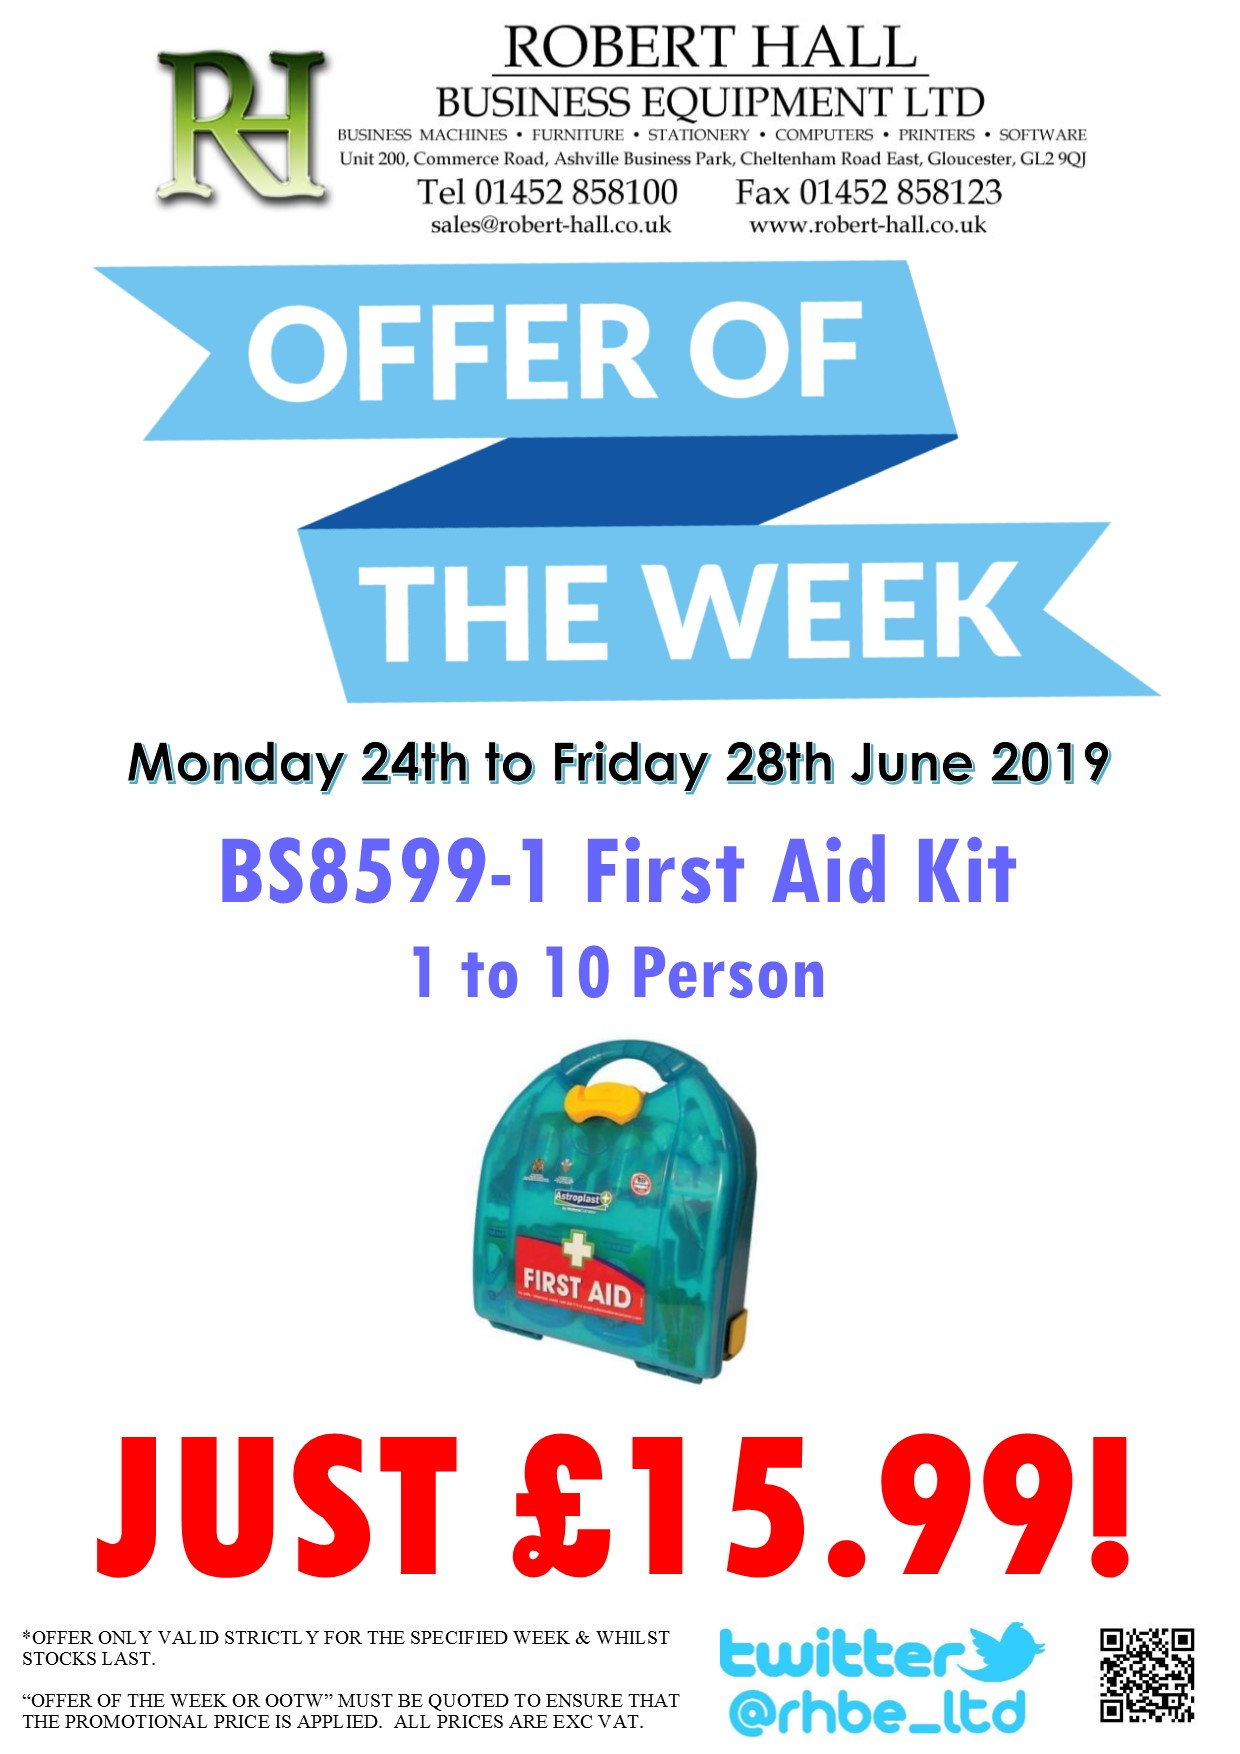 Offer Of The Week: BS8599-1 First Aid Kit - 1 to 10 Person